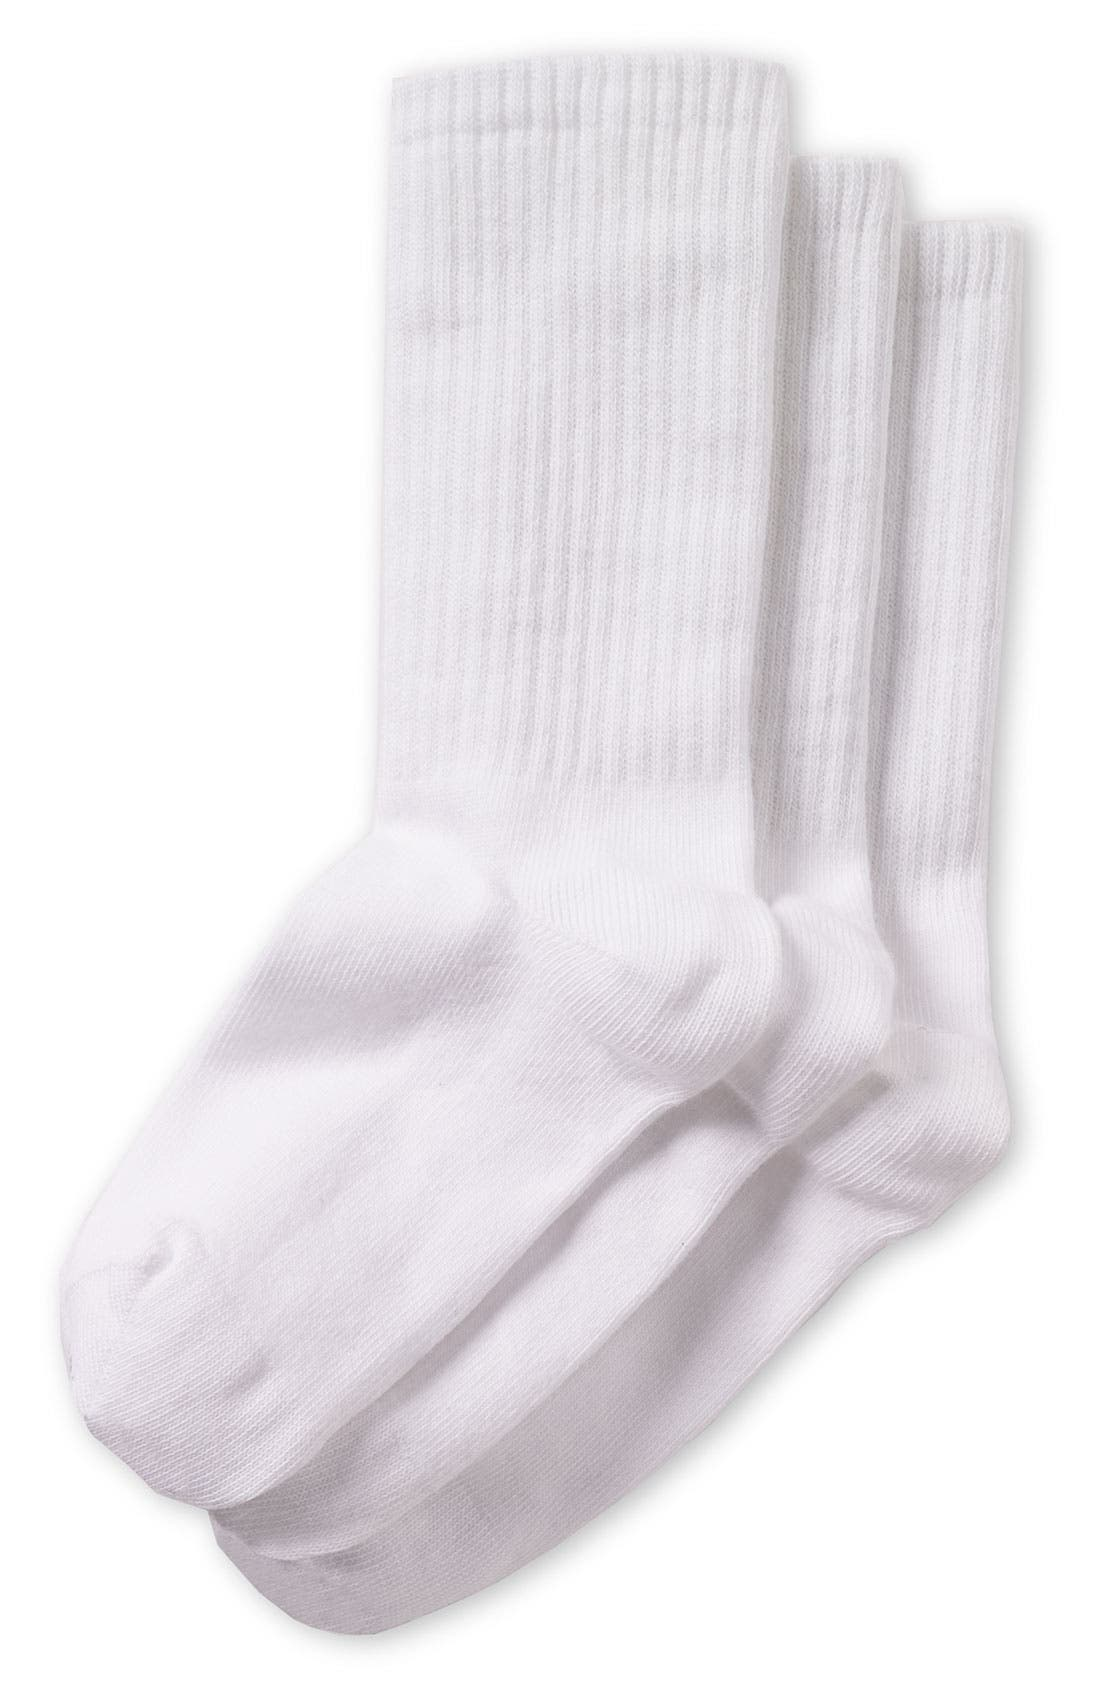 Alternate Image 1 Selected - Nordstrom Cotton Blend Crew Socks (3-Pack) (Toddler, Little Boys & Big Boys)